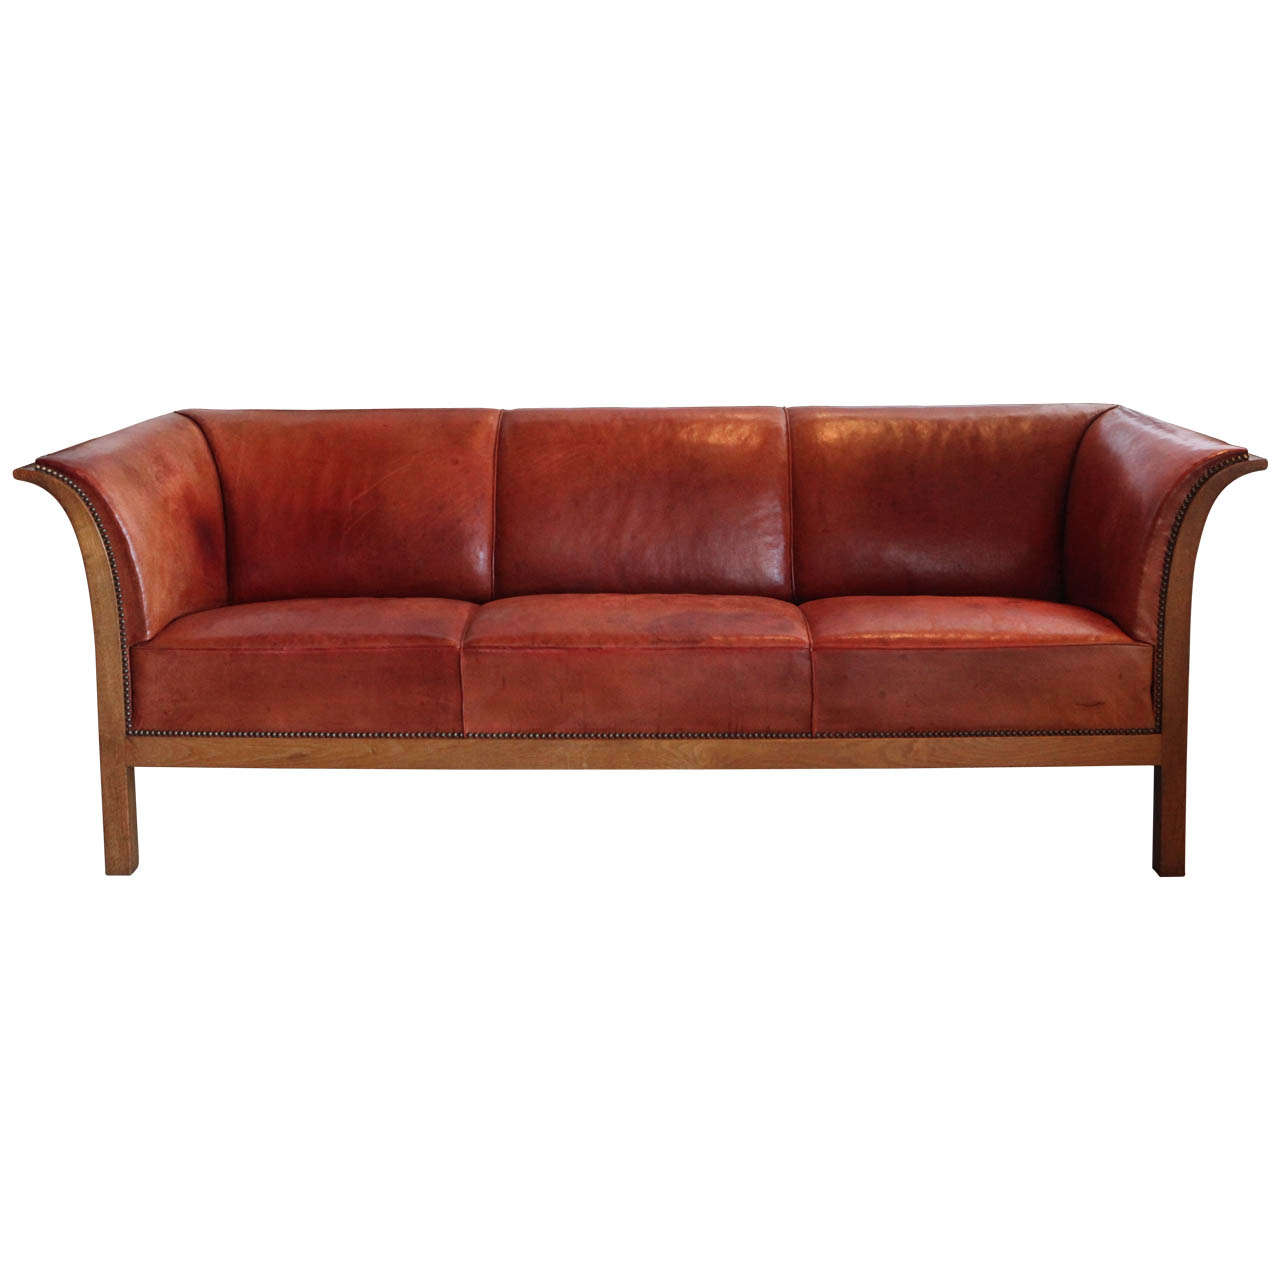 frits henningsen cognac red leather sofa denmark 1939 at. Black Bedroom Furniture Sets. Home Design Ideas